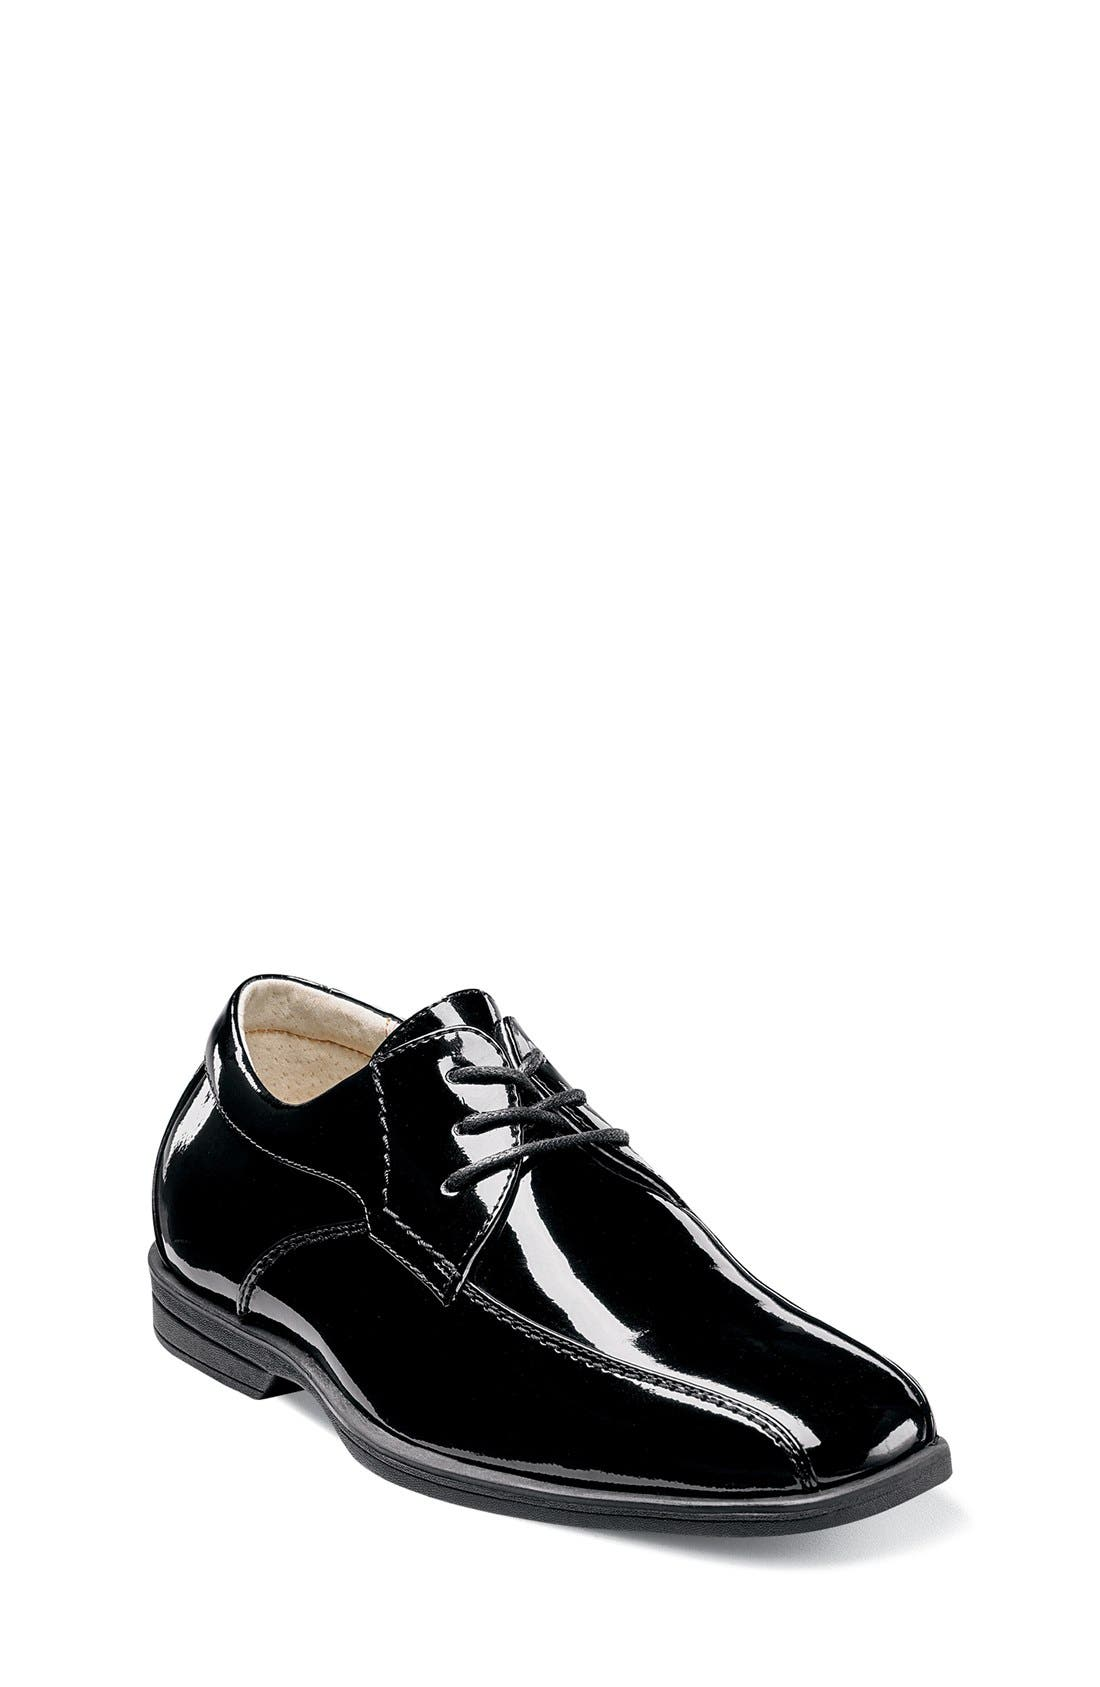 'Reveal' Oxford,                         Main,                         color, BLACK PATENT LEATHER